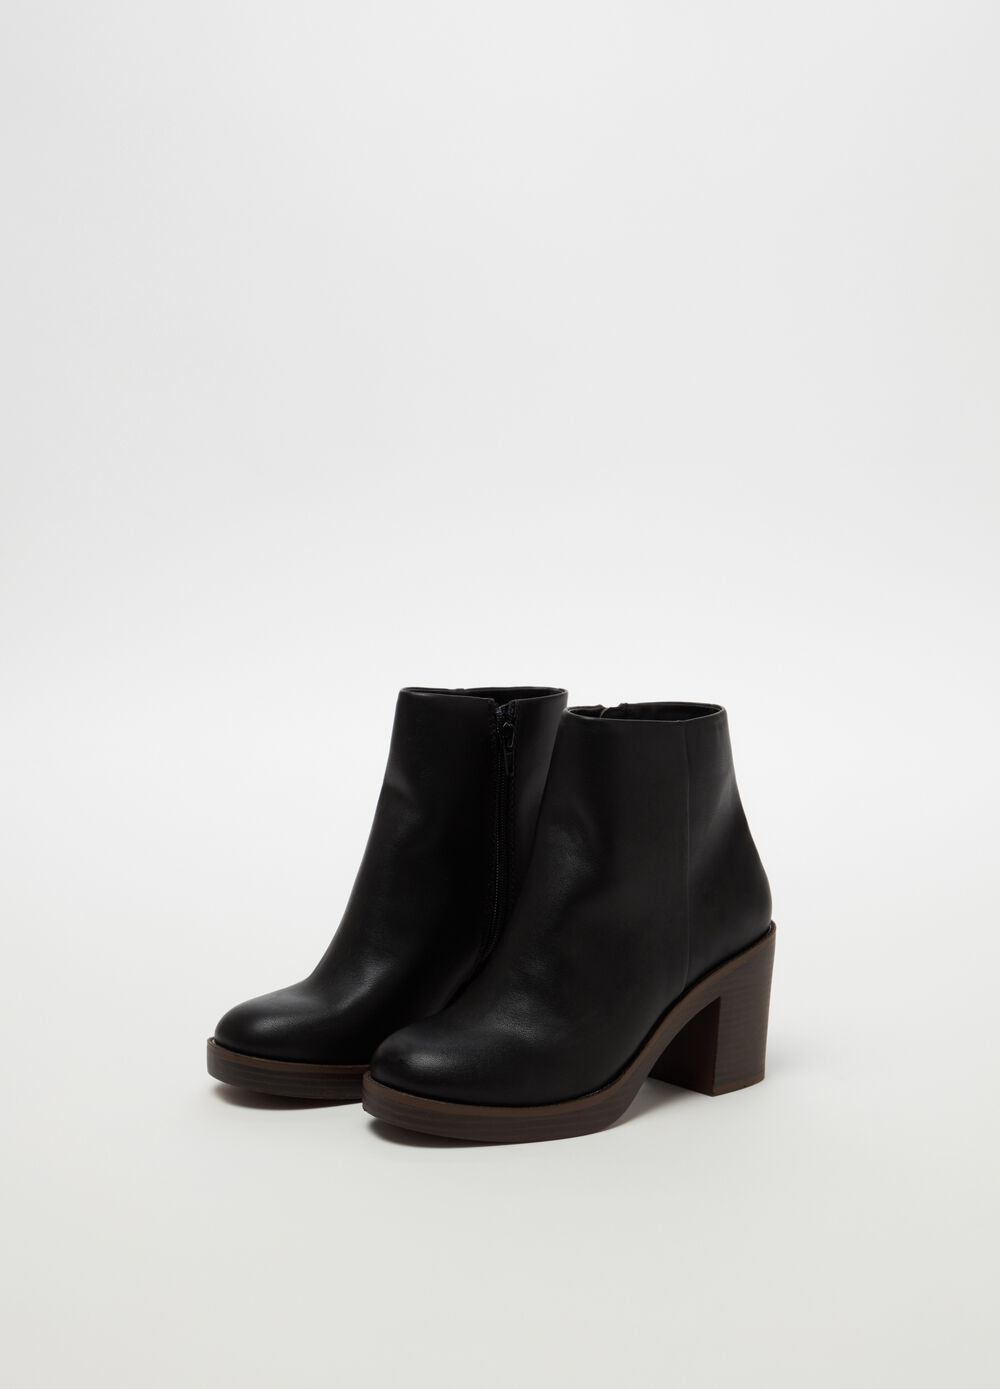 Ankle boots with chunky heel and round toe